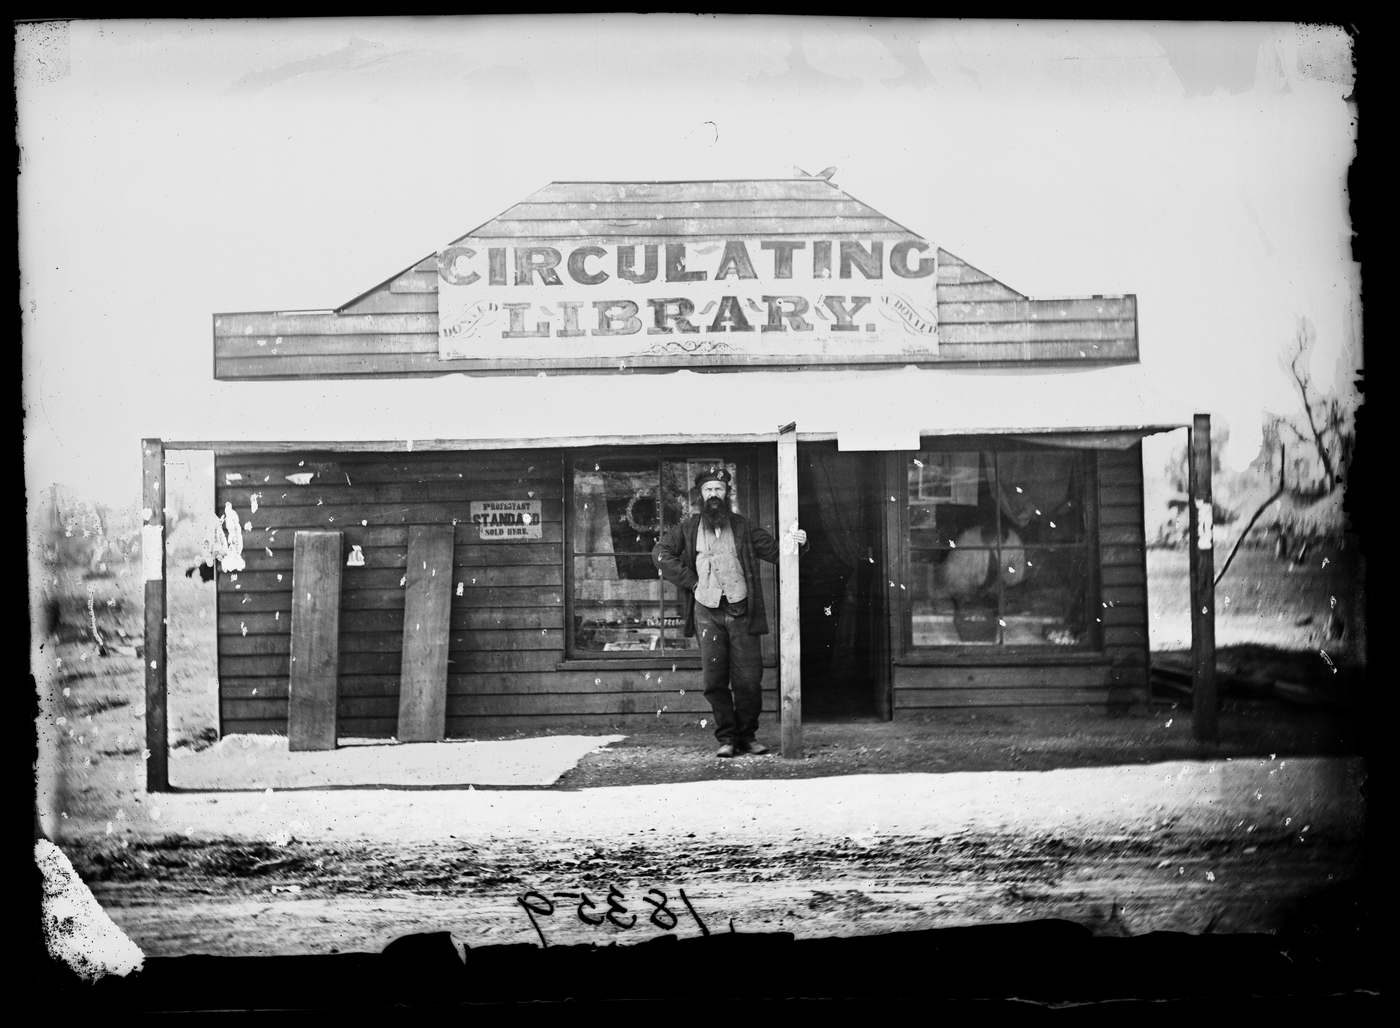 Donald McDonald, stationer, and his Circulating Library, Gulgong